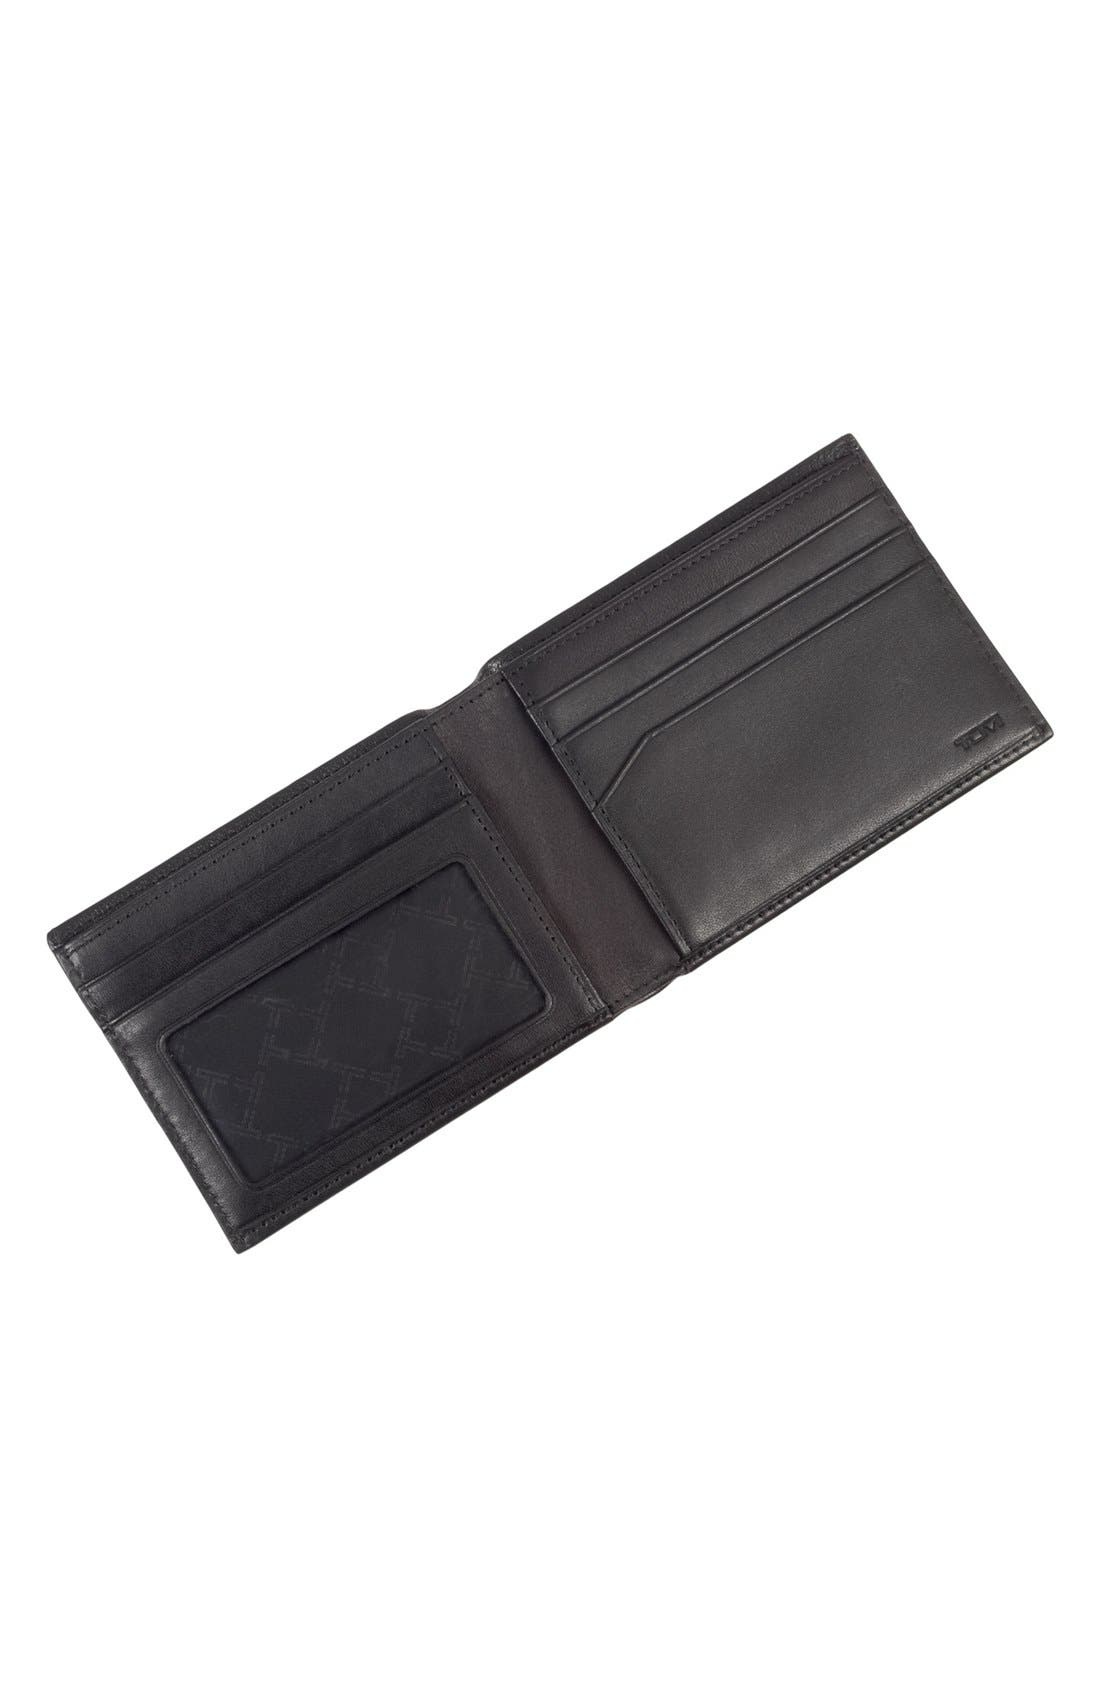 'Rivington' Leather Wallet,                             Alternate thumbnail 4, color,                             001